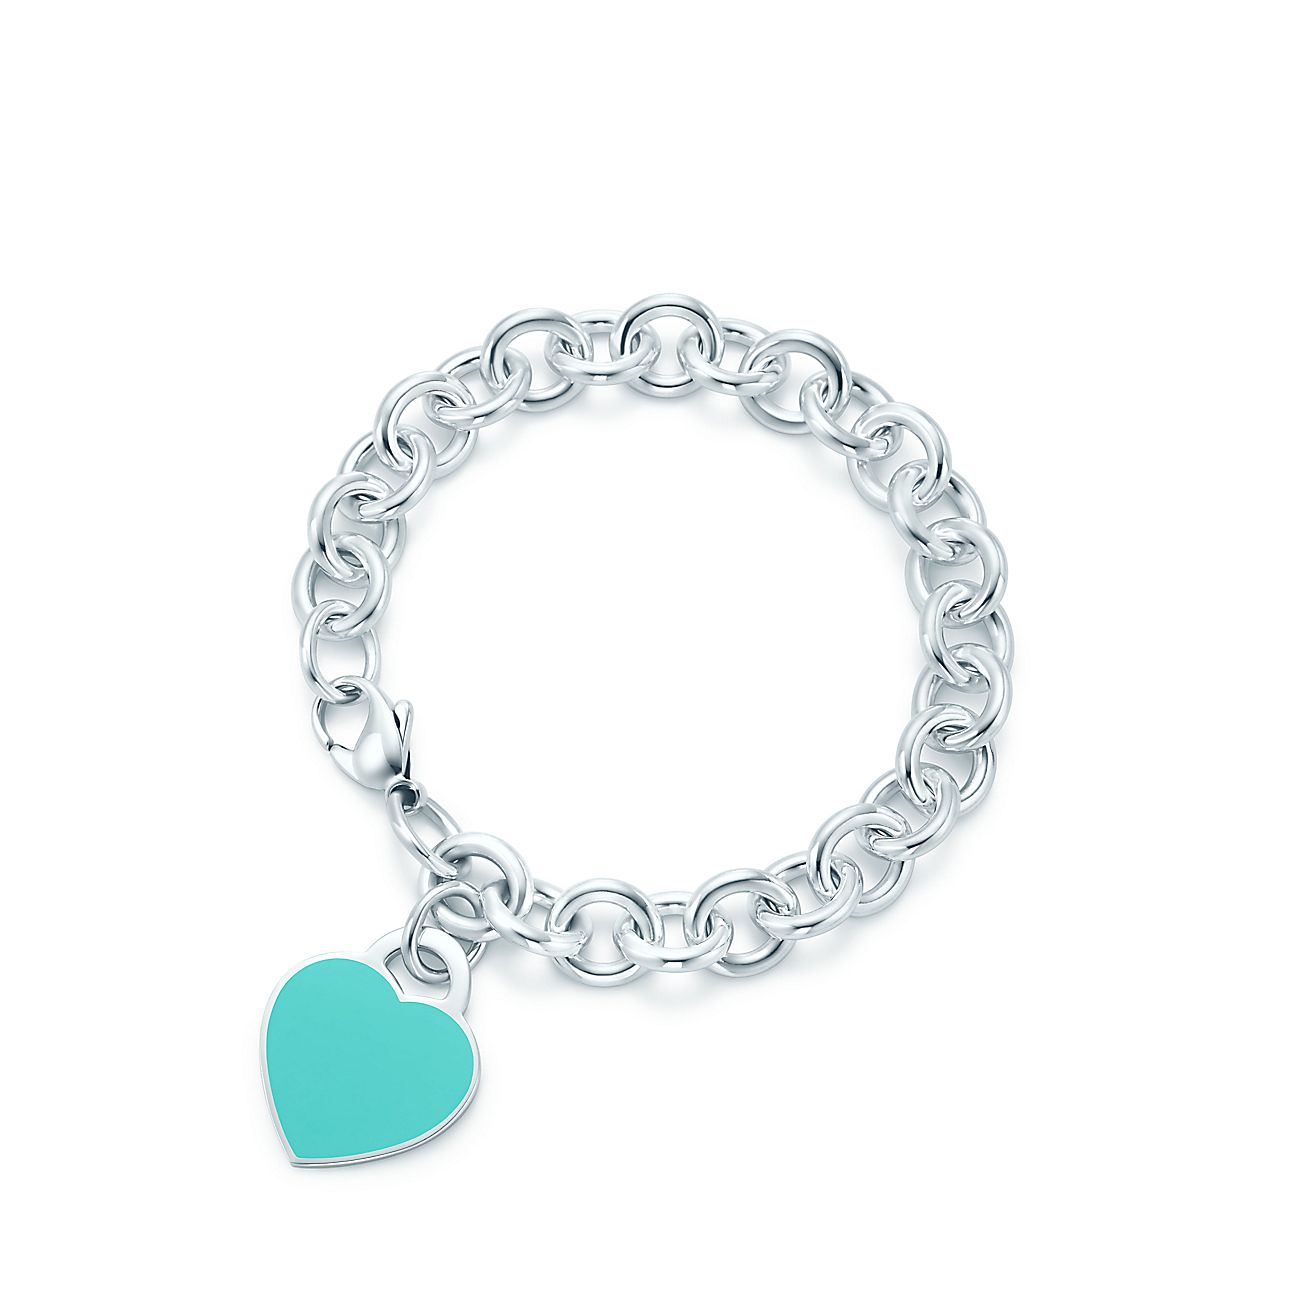 Tiffany Heart Bracelet >> Return To Tiffany Heart Tag In Silver With Enamel Finish On A